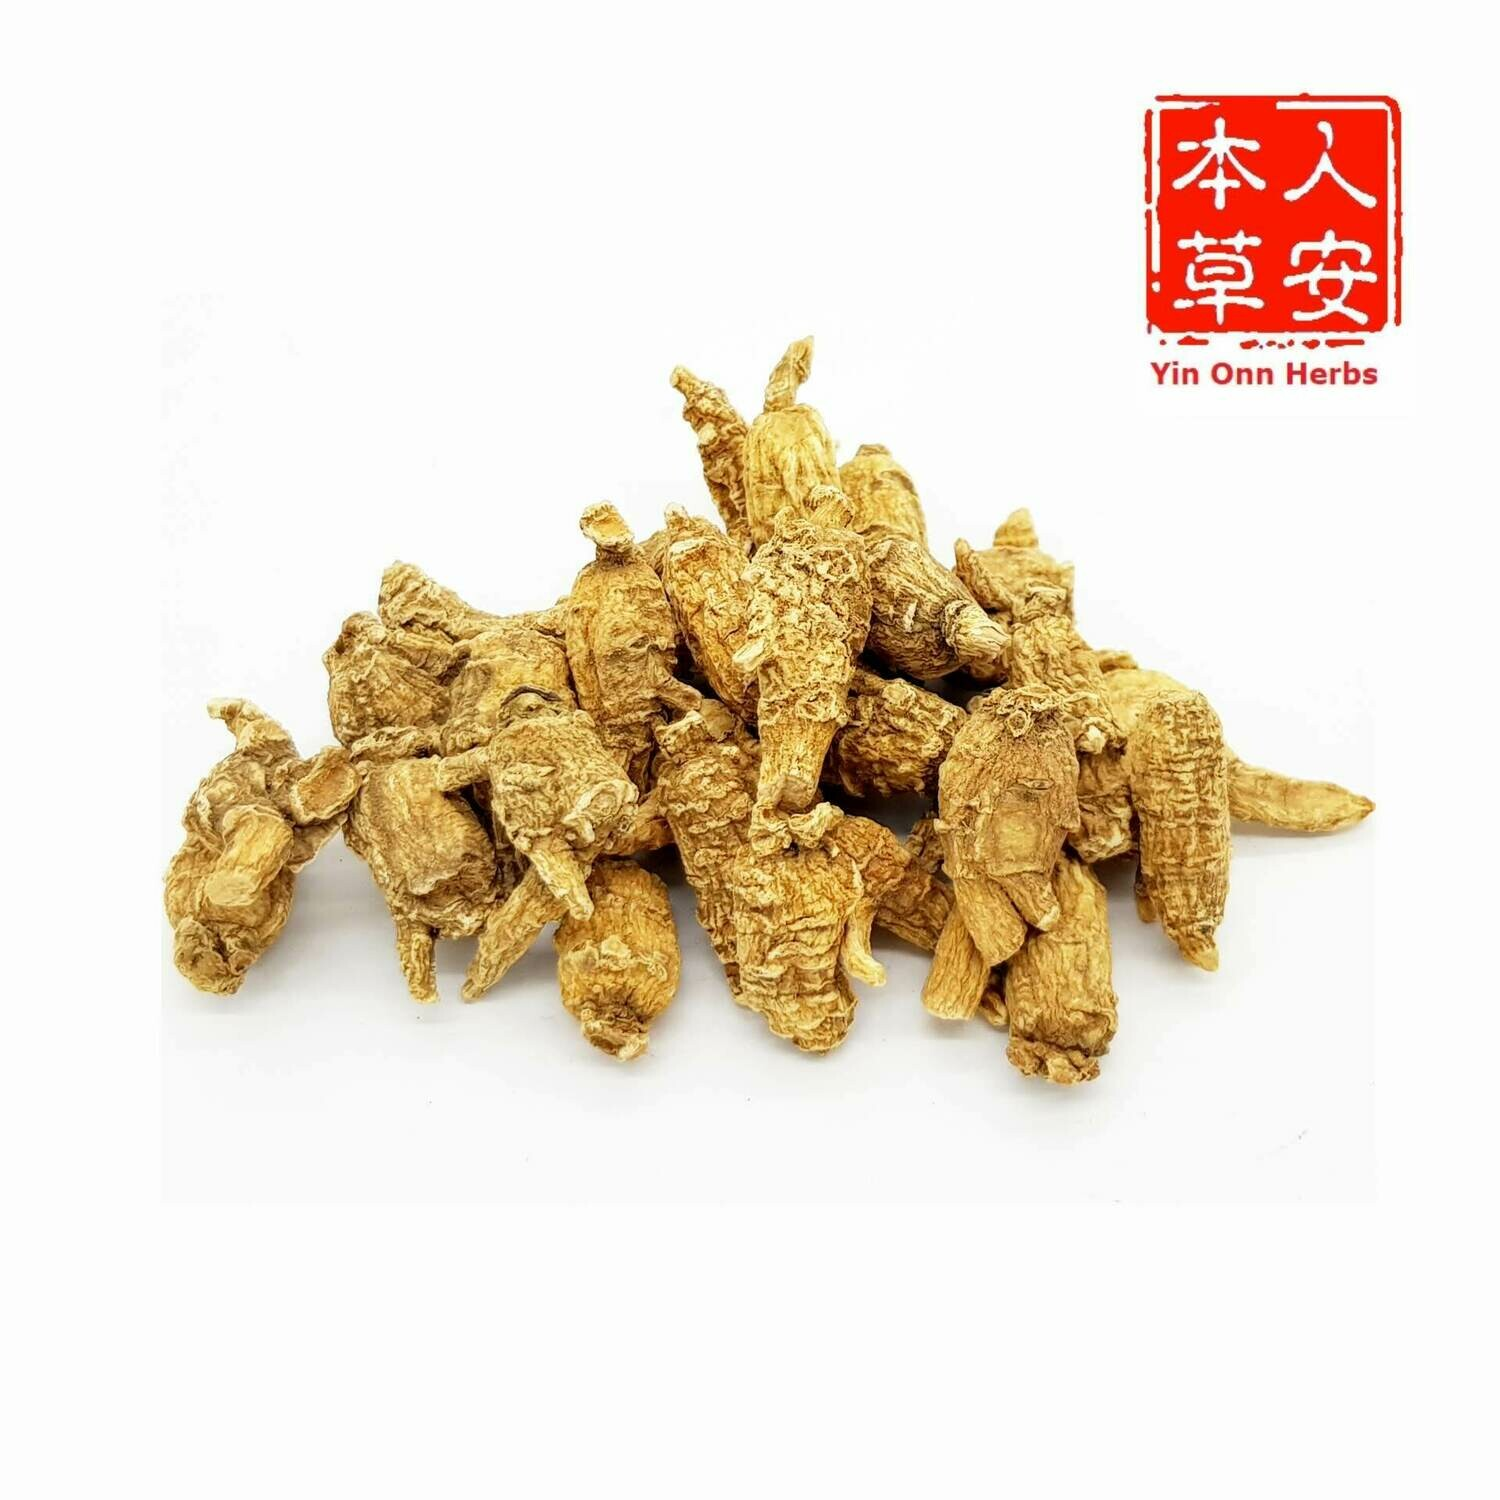 半野泡参 38gm Old American Ginseng